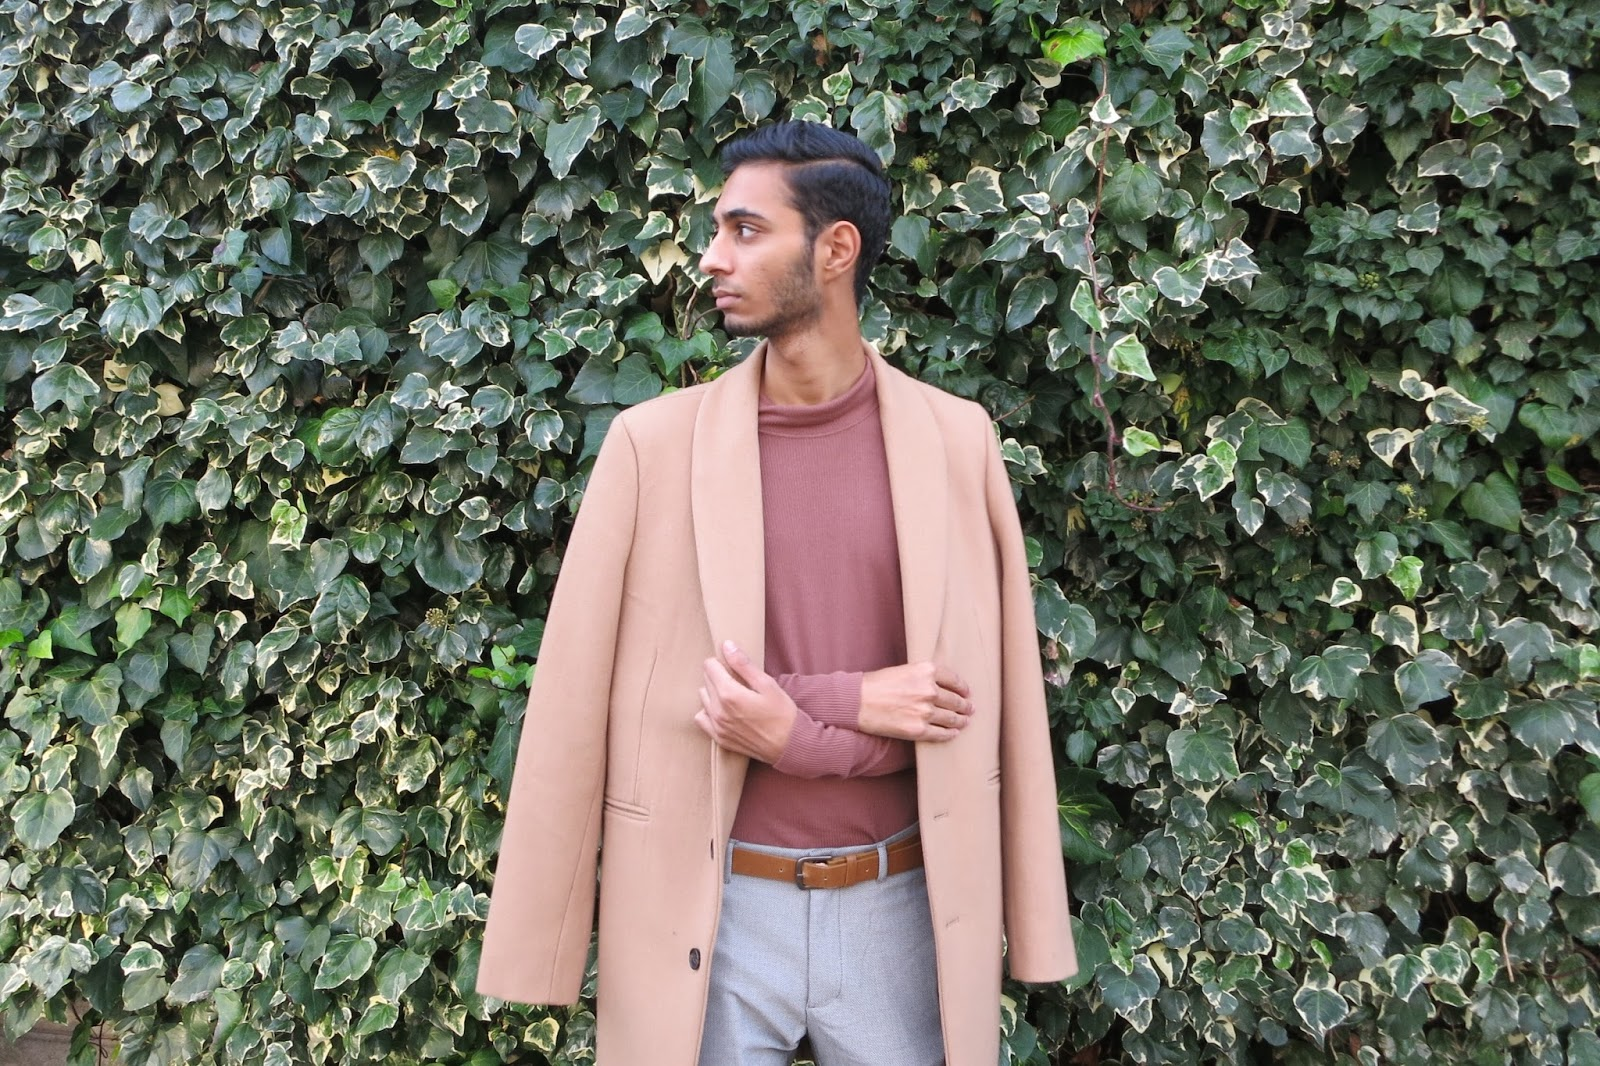 Men's ASOS Camel Overcoat